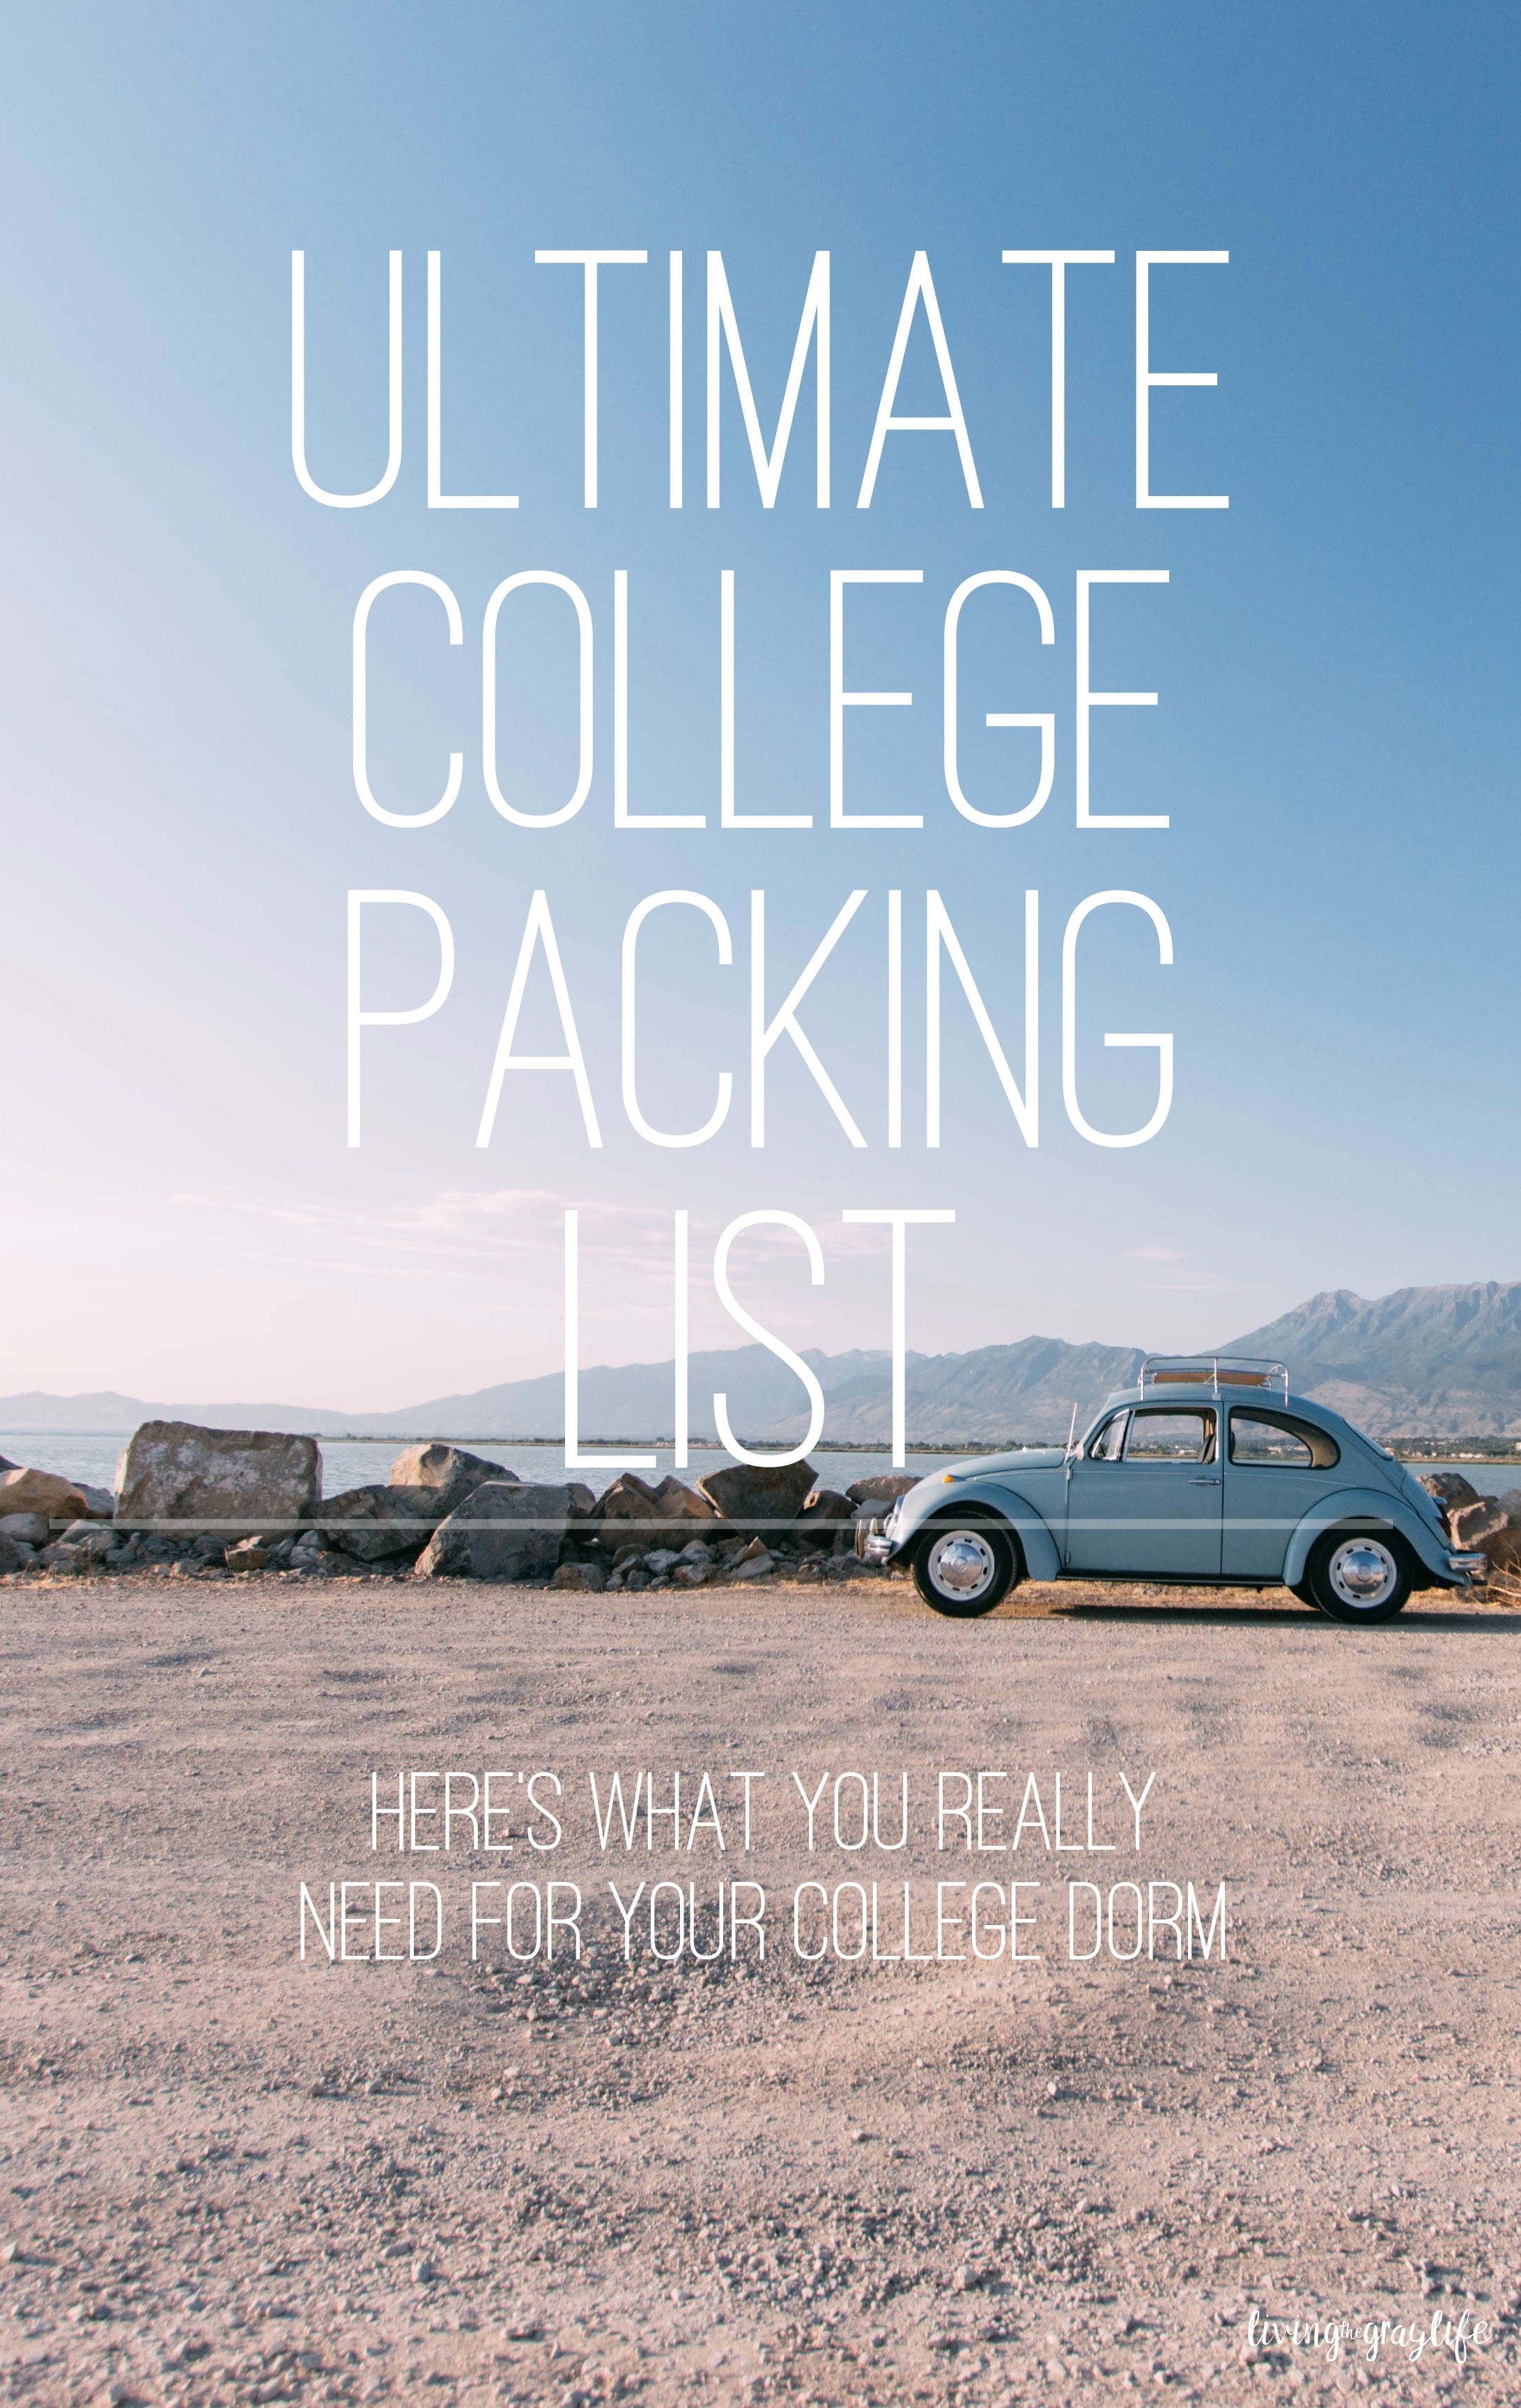 Here's what you actually need to pack for your college dorm! Ultimate college packing list.